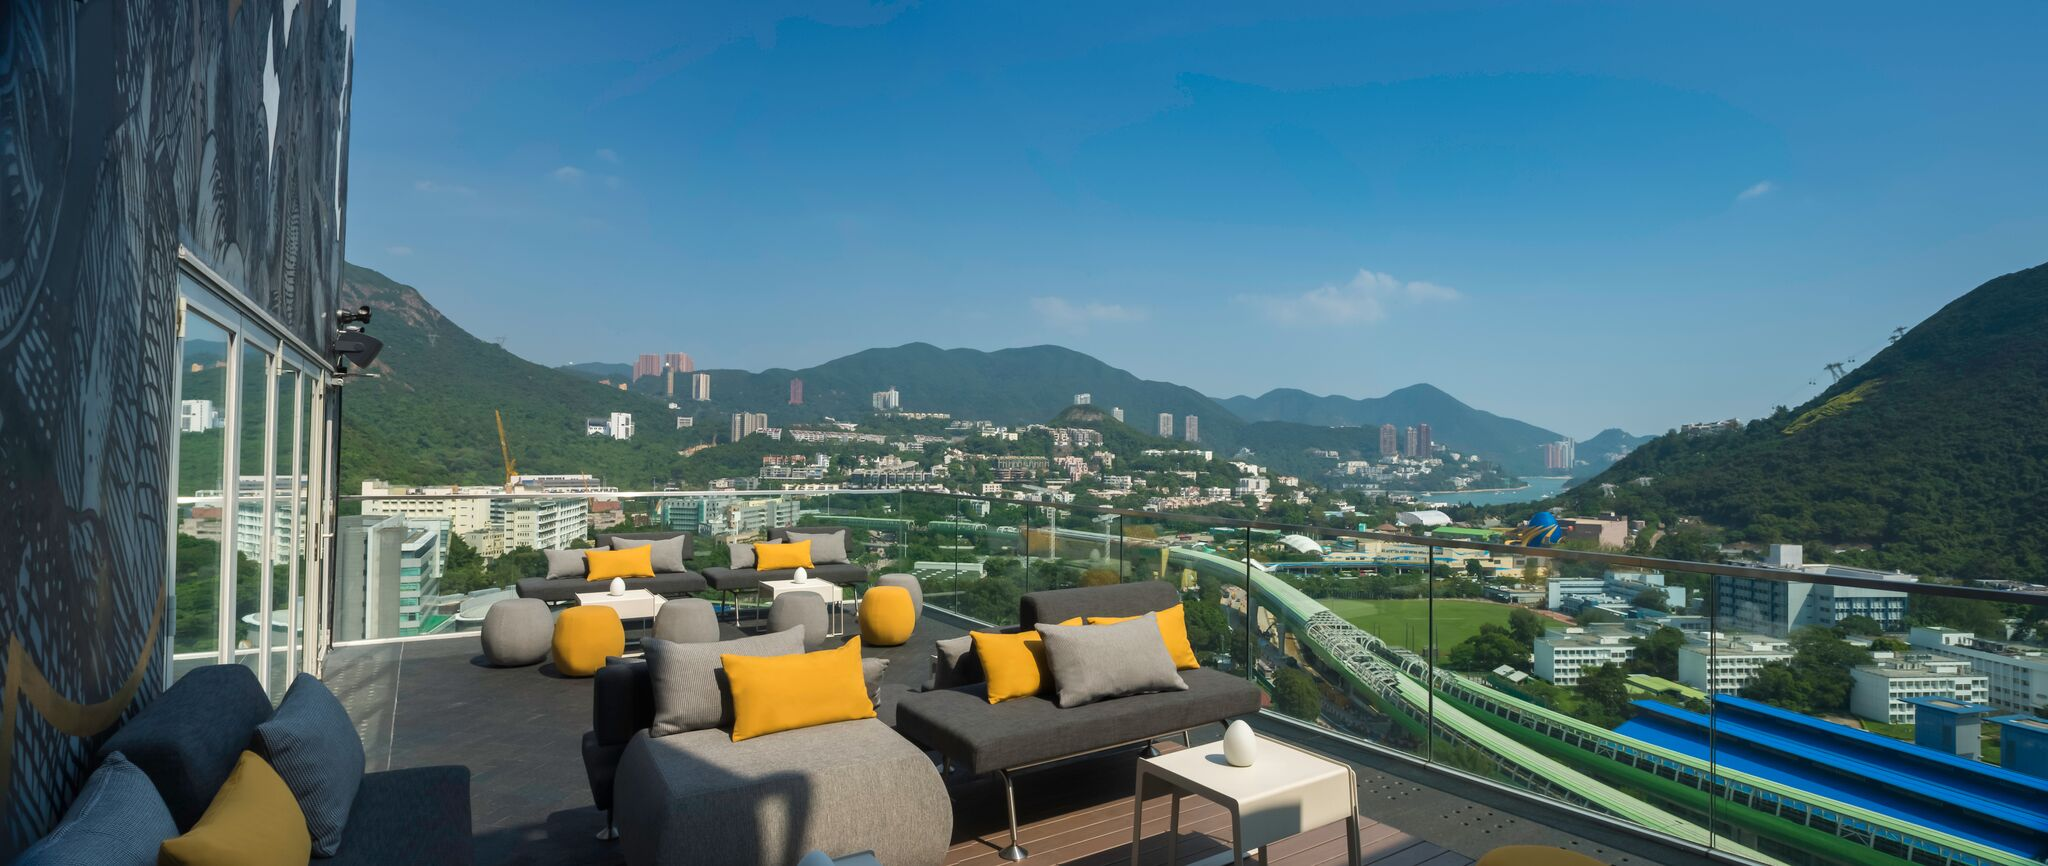 ovolo-southside-terrace-23f_preview